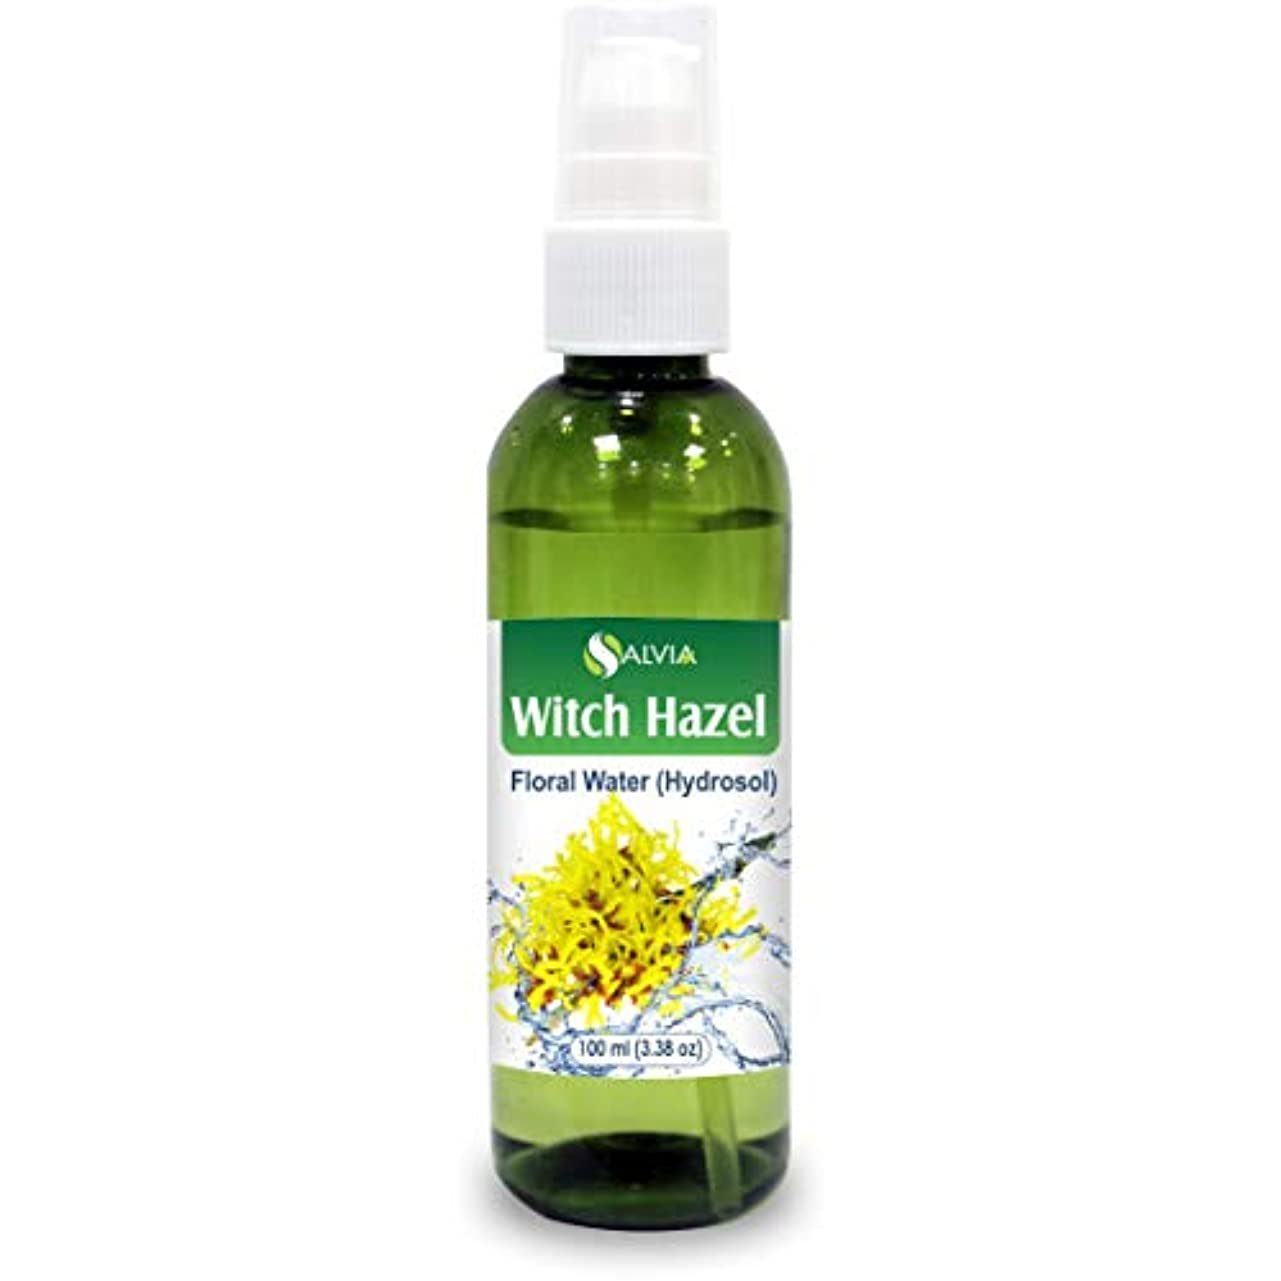 フレア安全丘Witch Hazel Floral Water 100ml (Hydrosol) 100% Pure And Natural